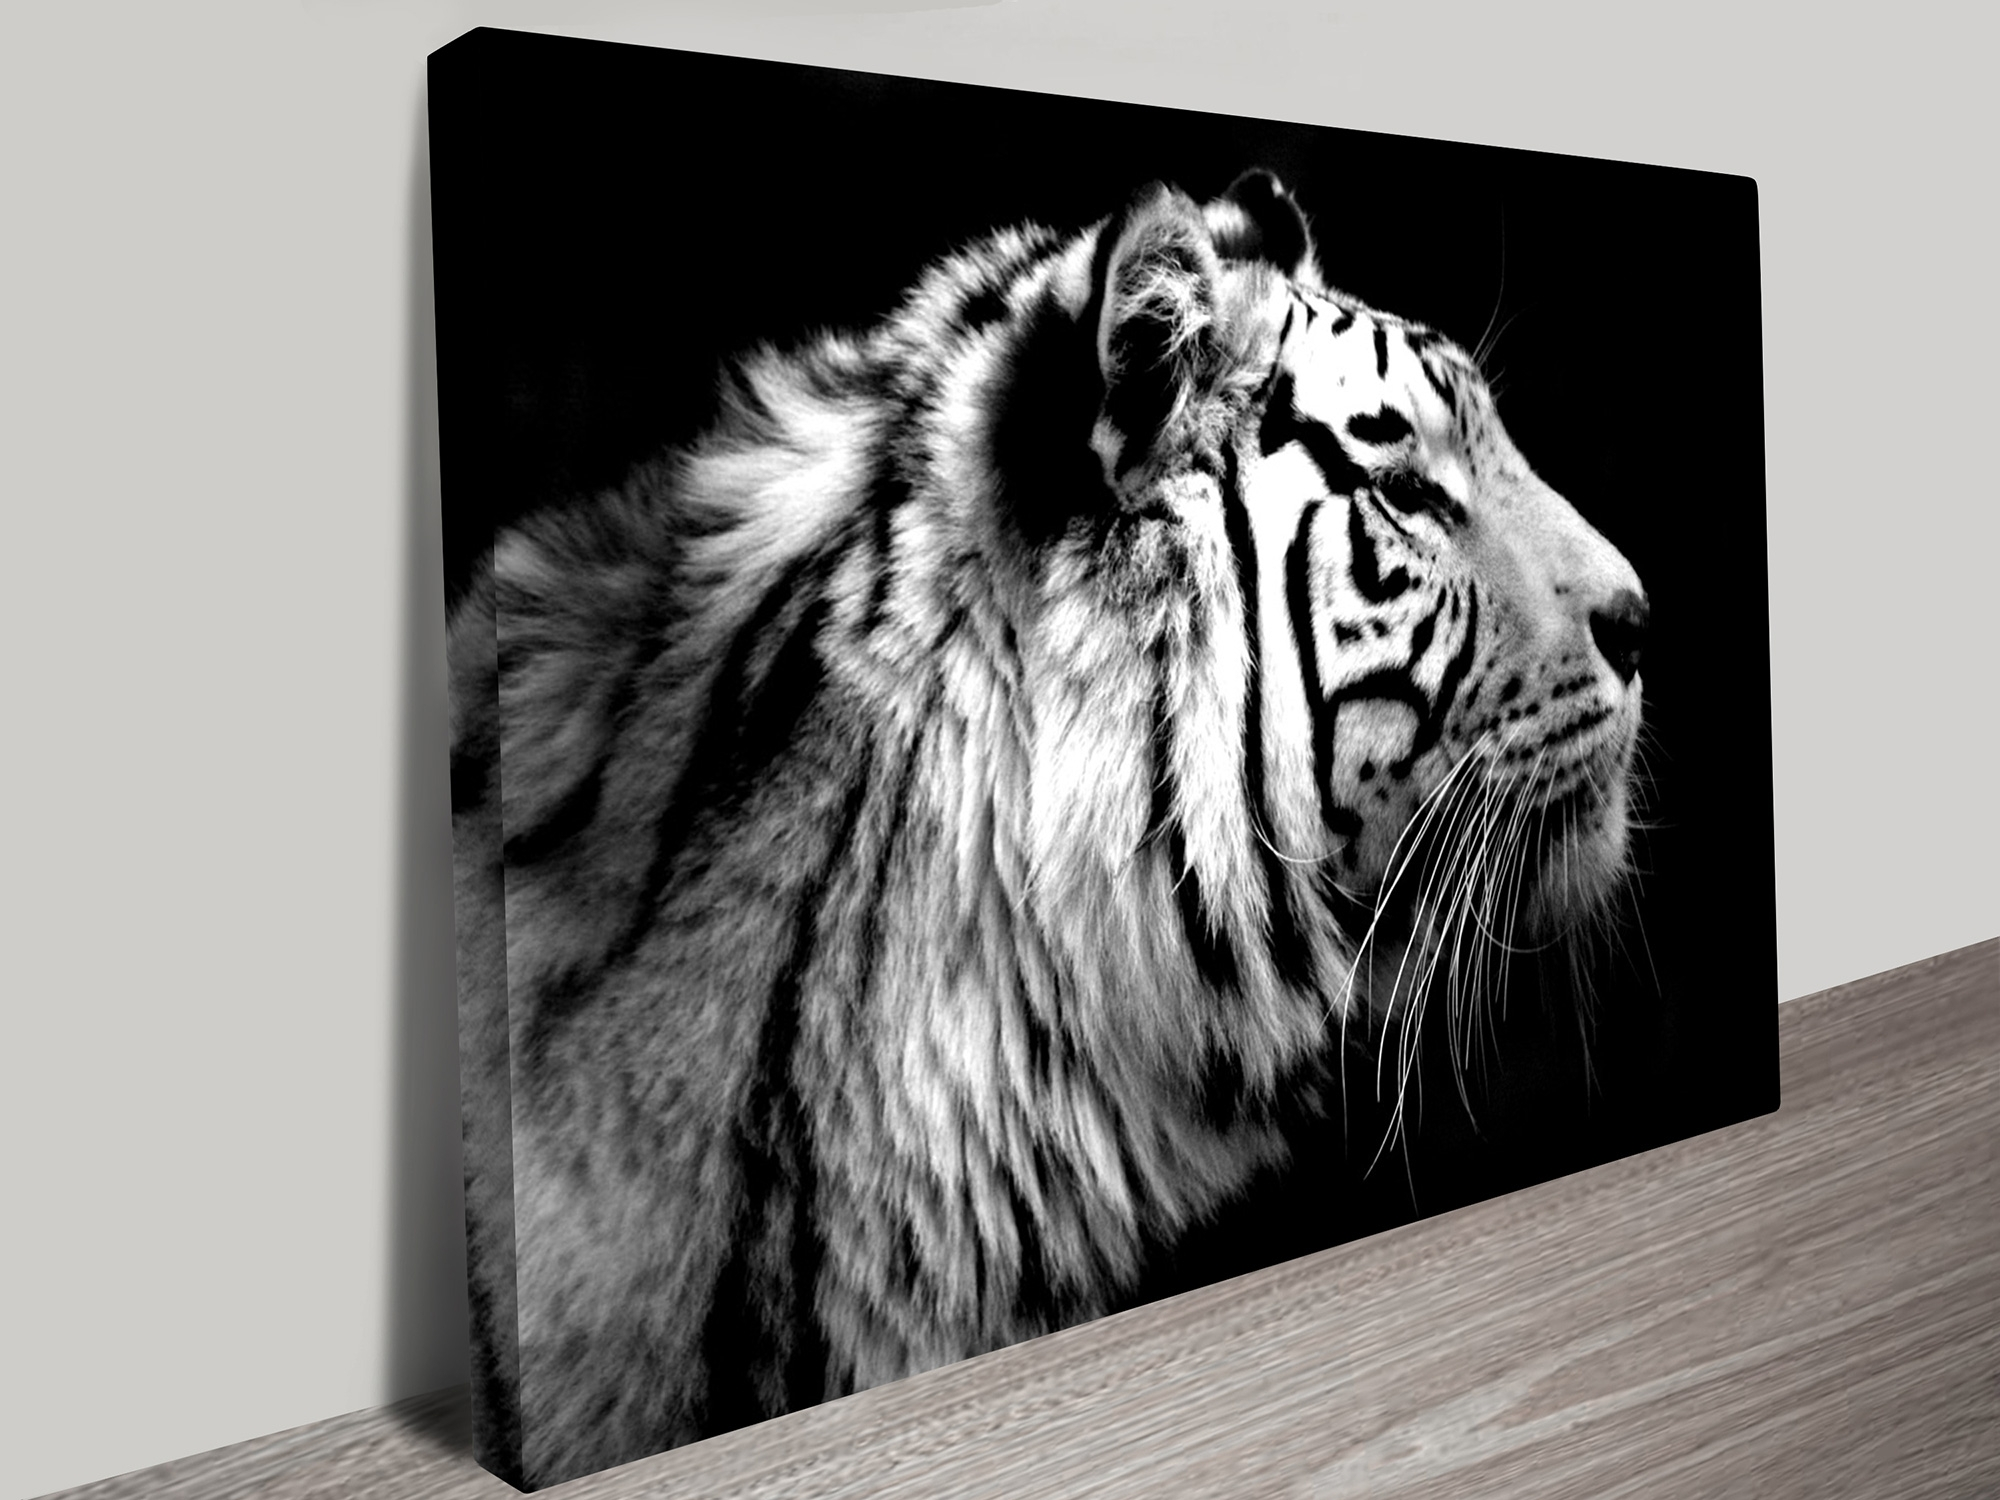 Tiger Black & White Photo Canvas Print Darwin Au For Current Black And White Photography Canvas Wall Art (Gallery 6 of 15)